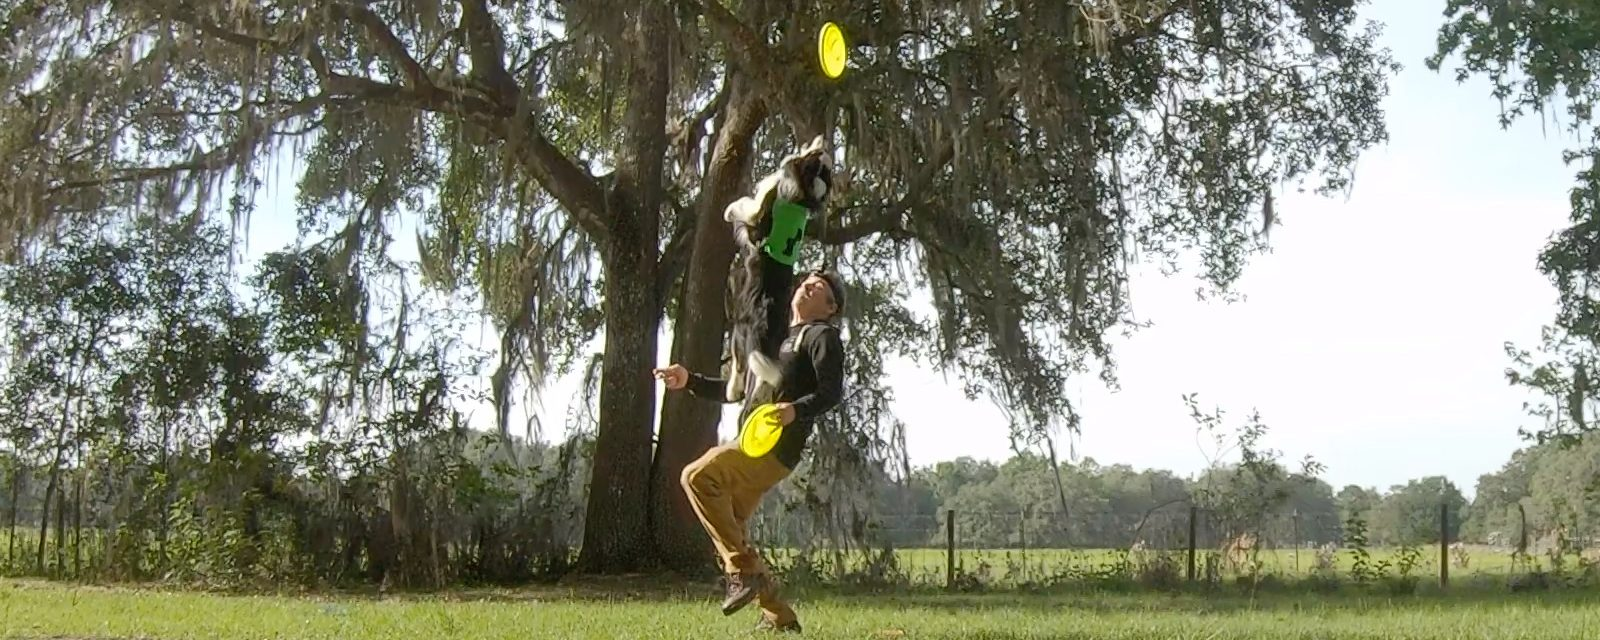 On Disc Dog Vaulting   Timing Is NOT Your Problem